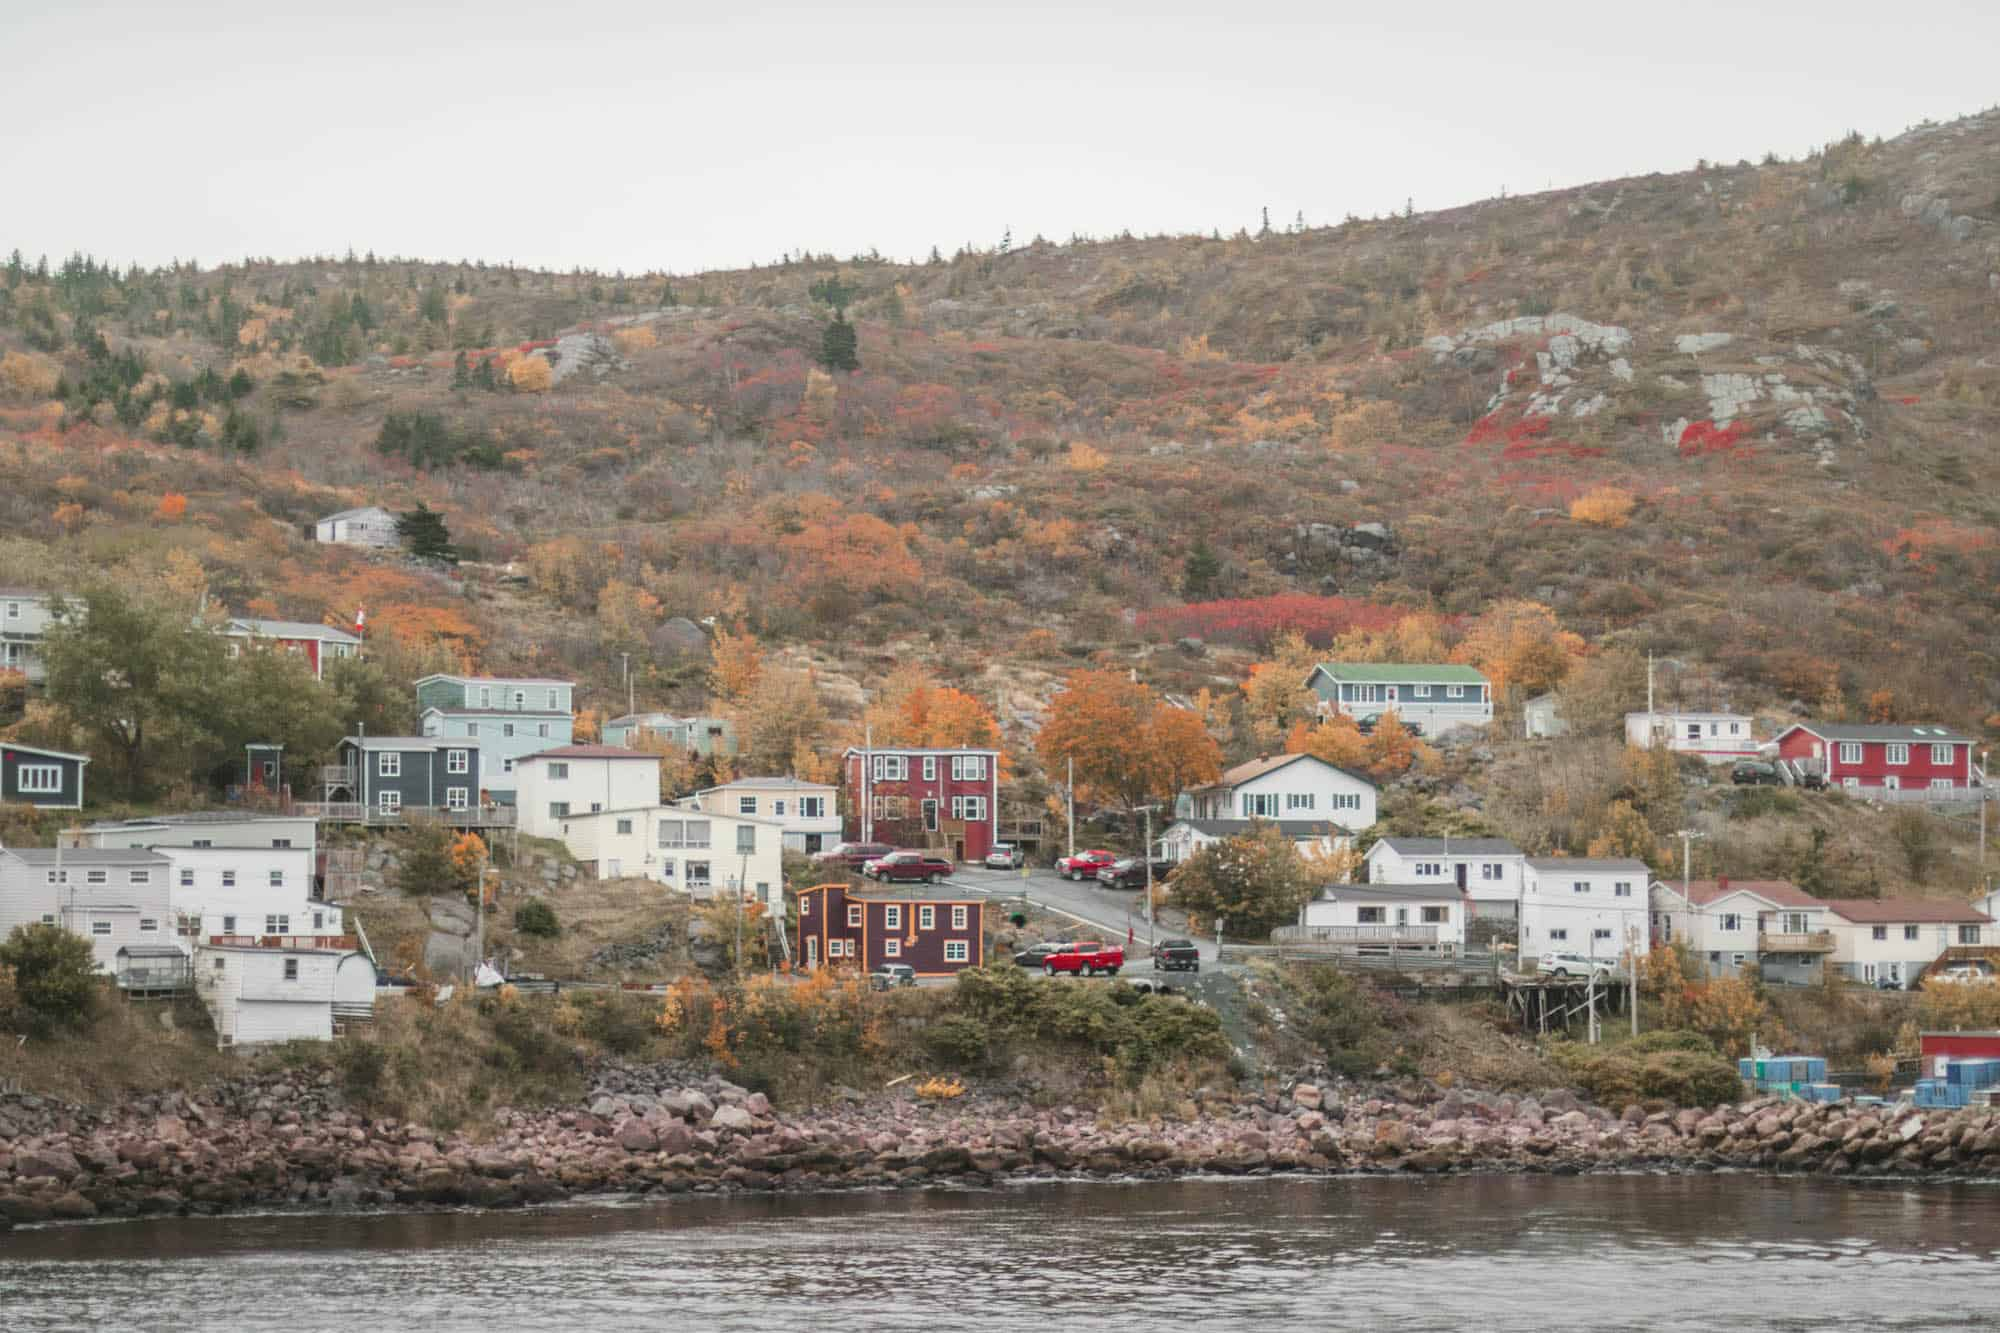 Petty Harbour-Maddox Cove is one of the best stops to make during your 4 days in St. John's, Newfoundland